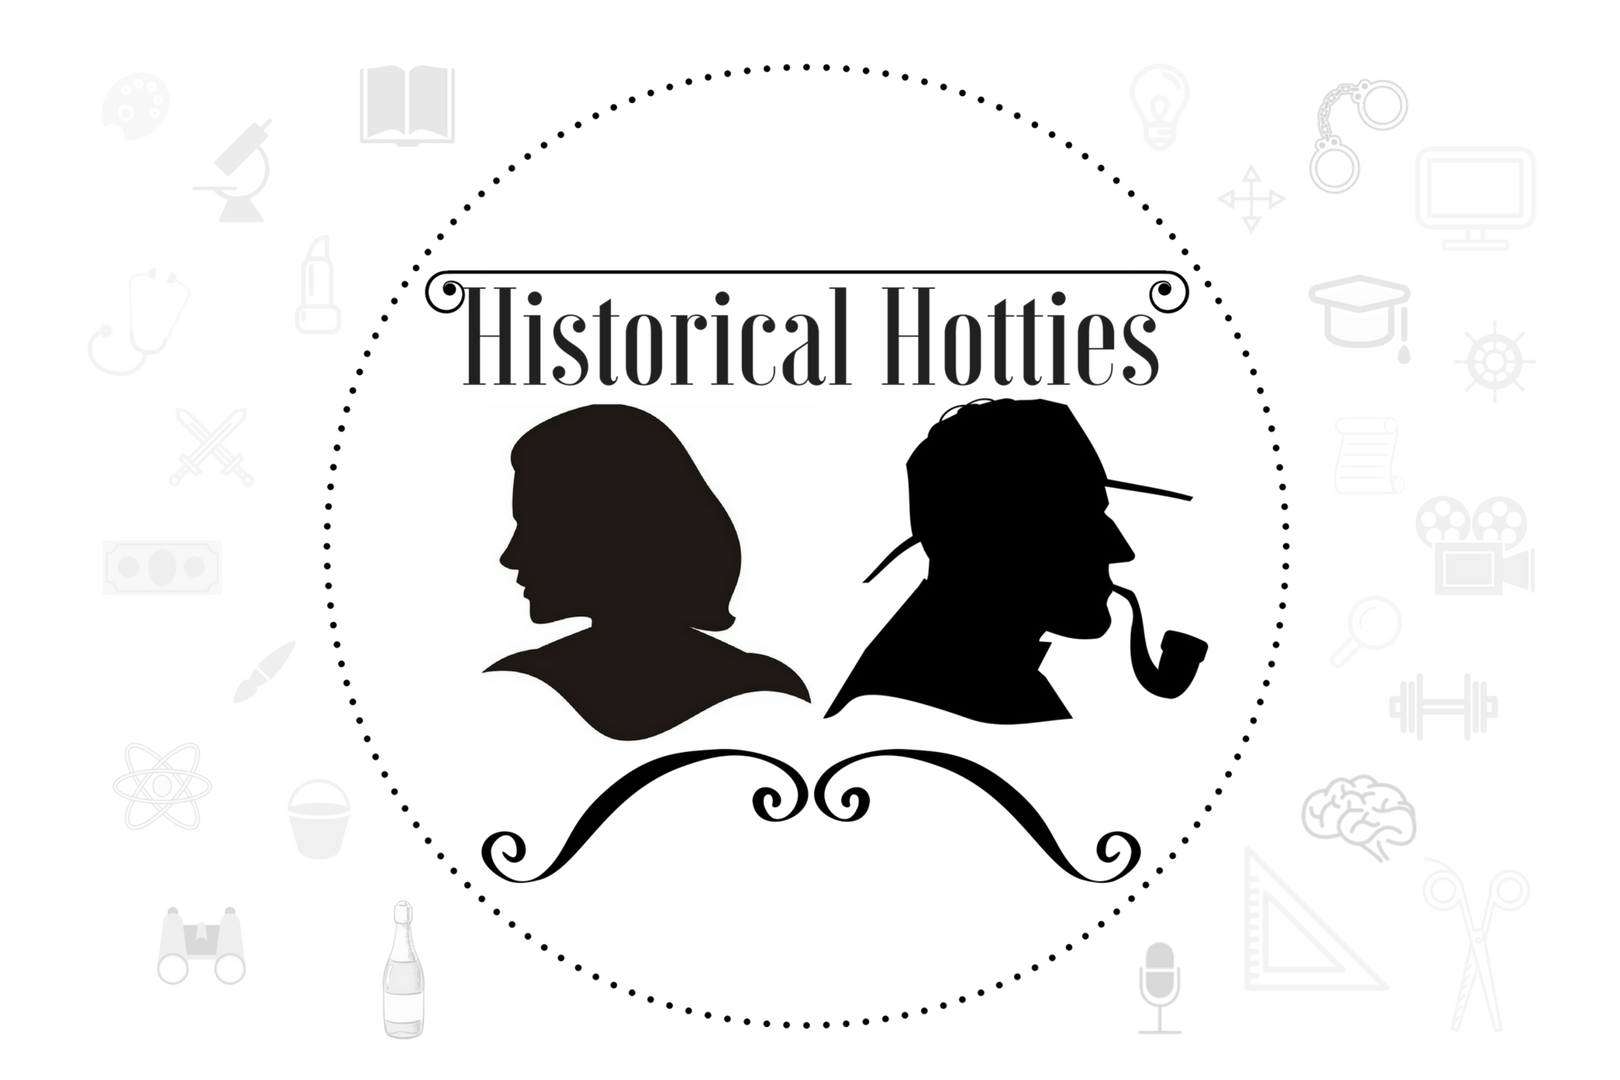 Historical Hotties website image